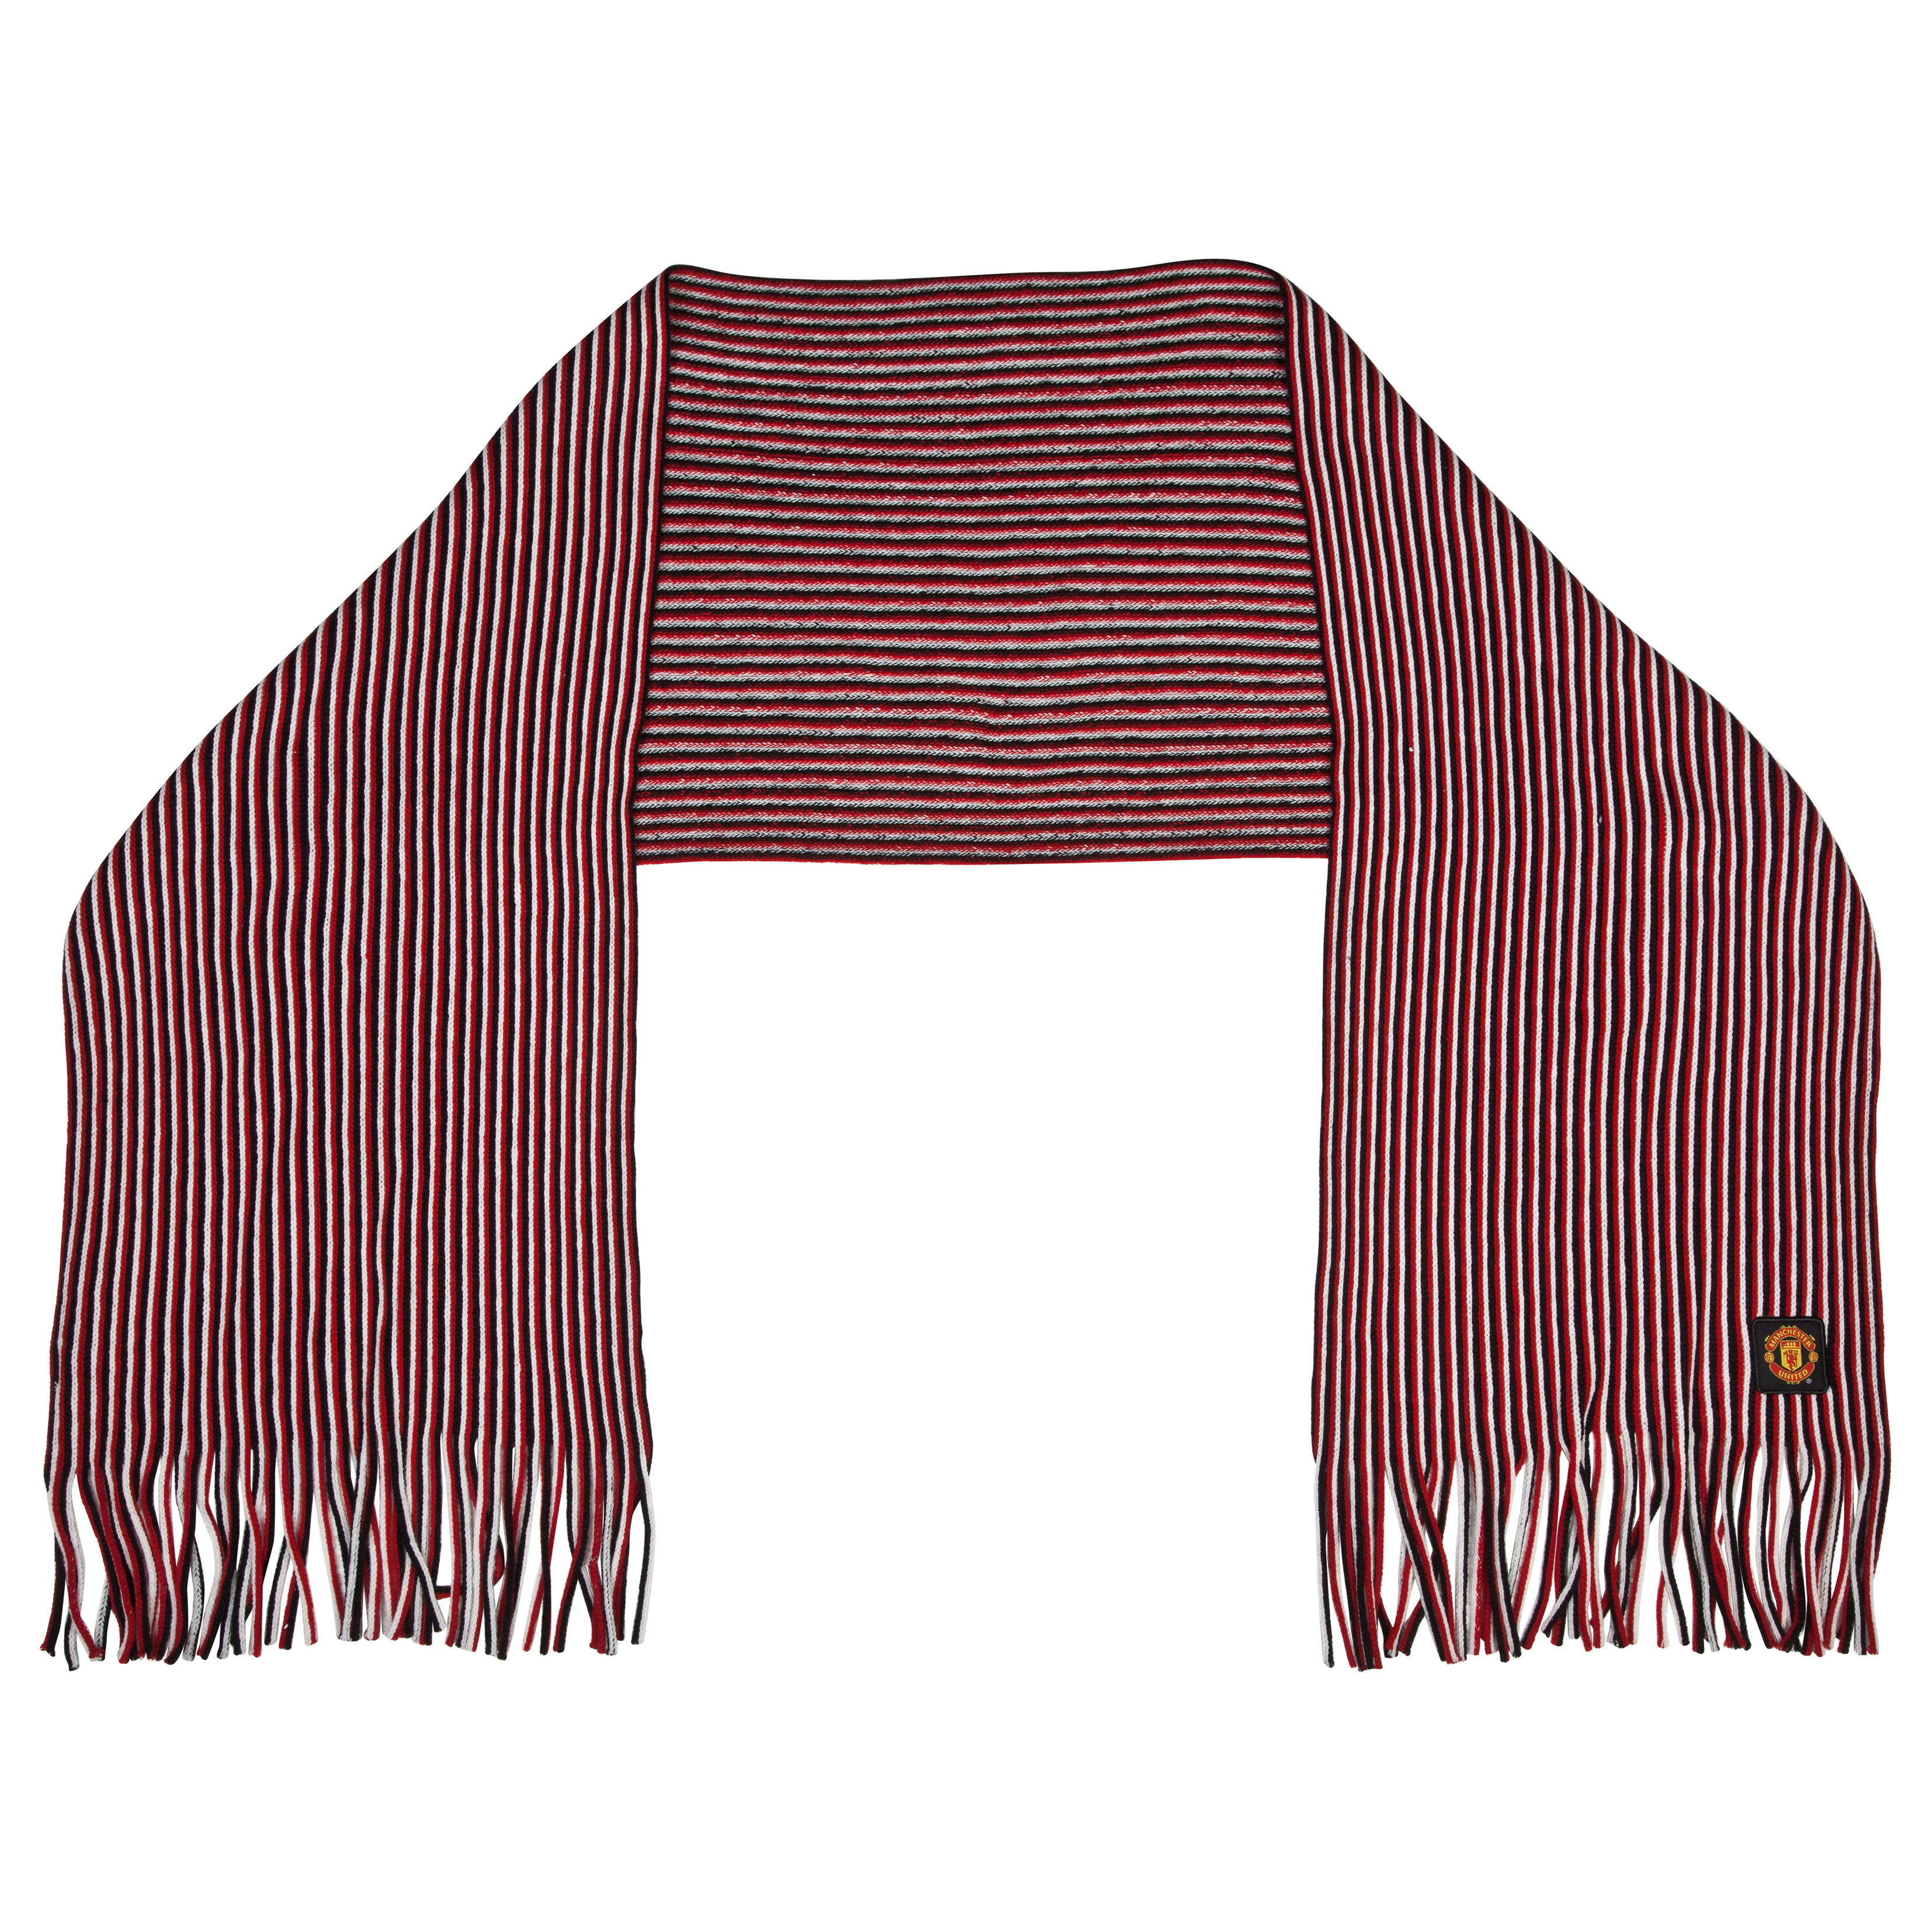 Manchester United Multi Stripe Fashion Scarf - Red - Adult